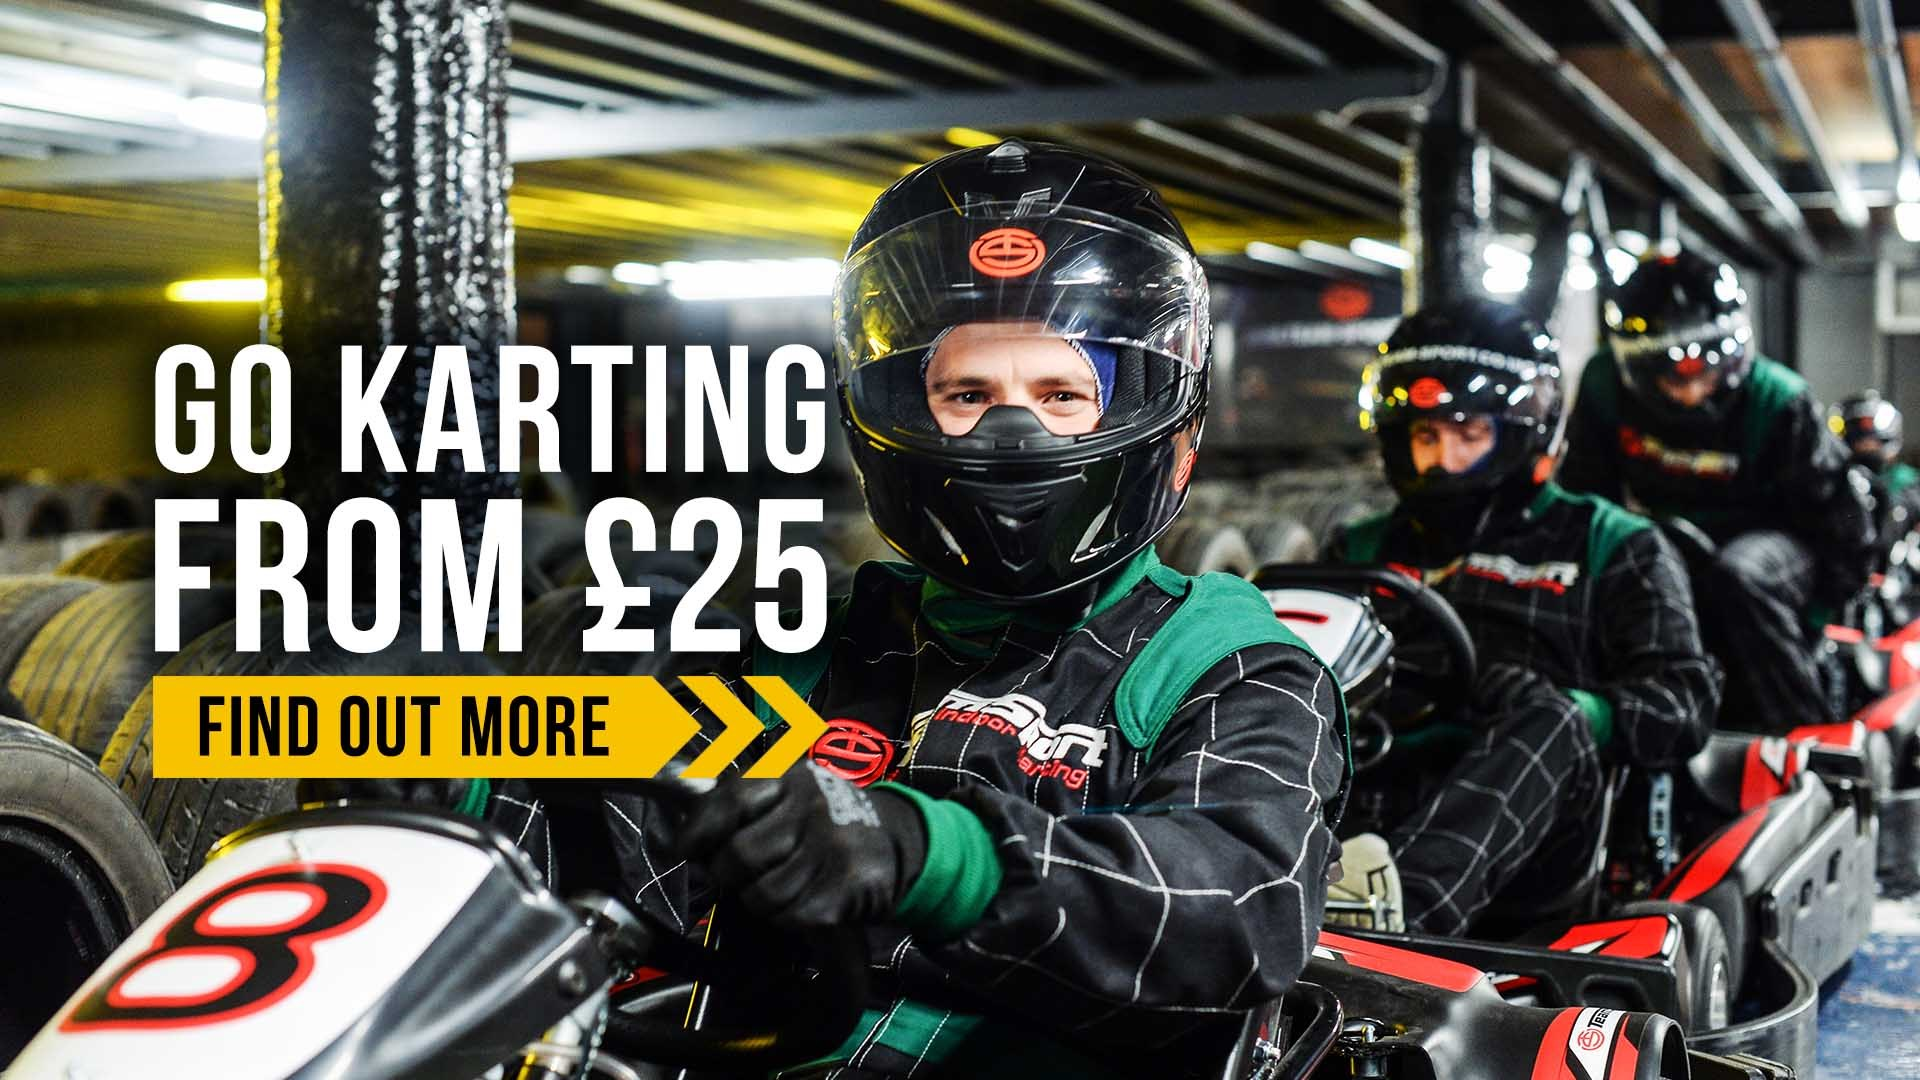 TeamSport_Go_Karting_Offername_Full_Width_Offer_Banner_1920x1080-min.jpg